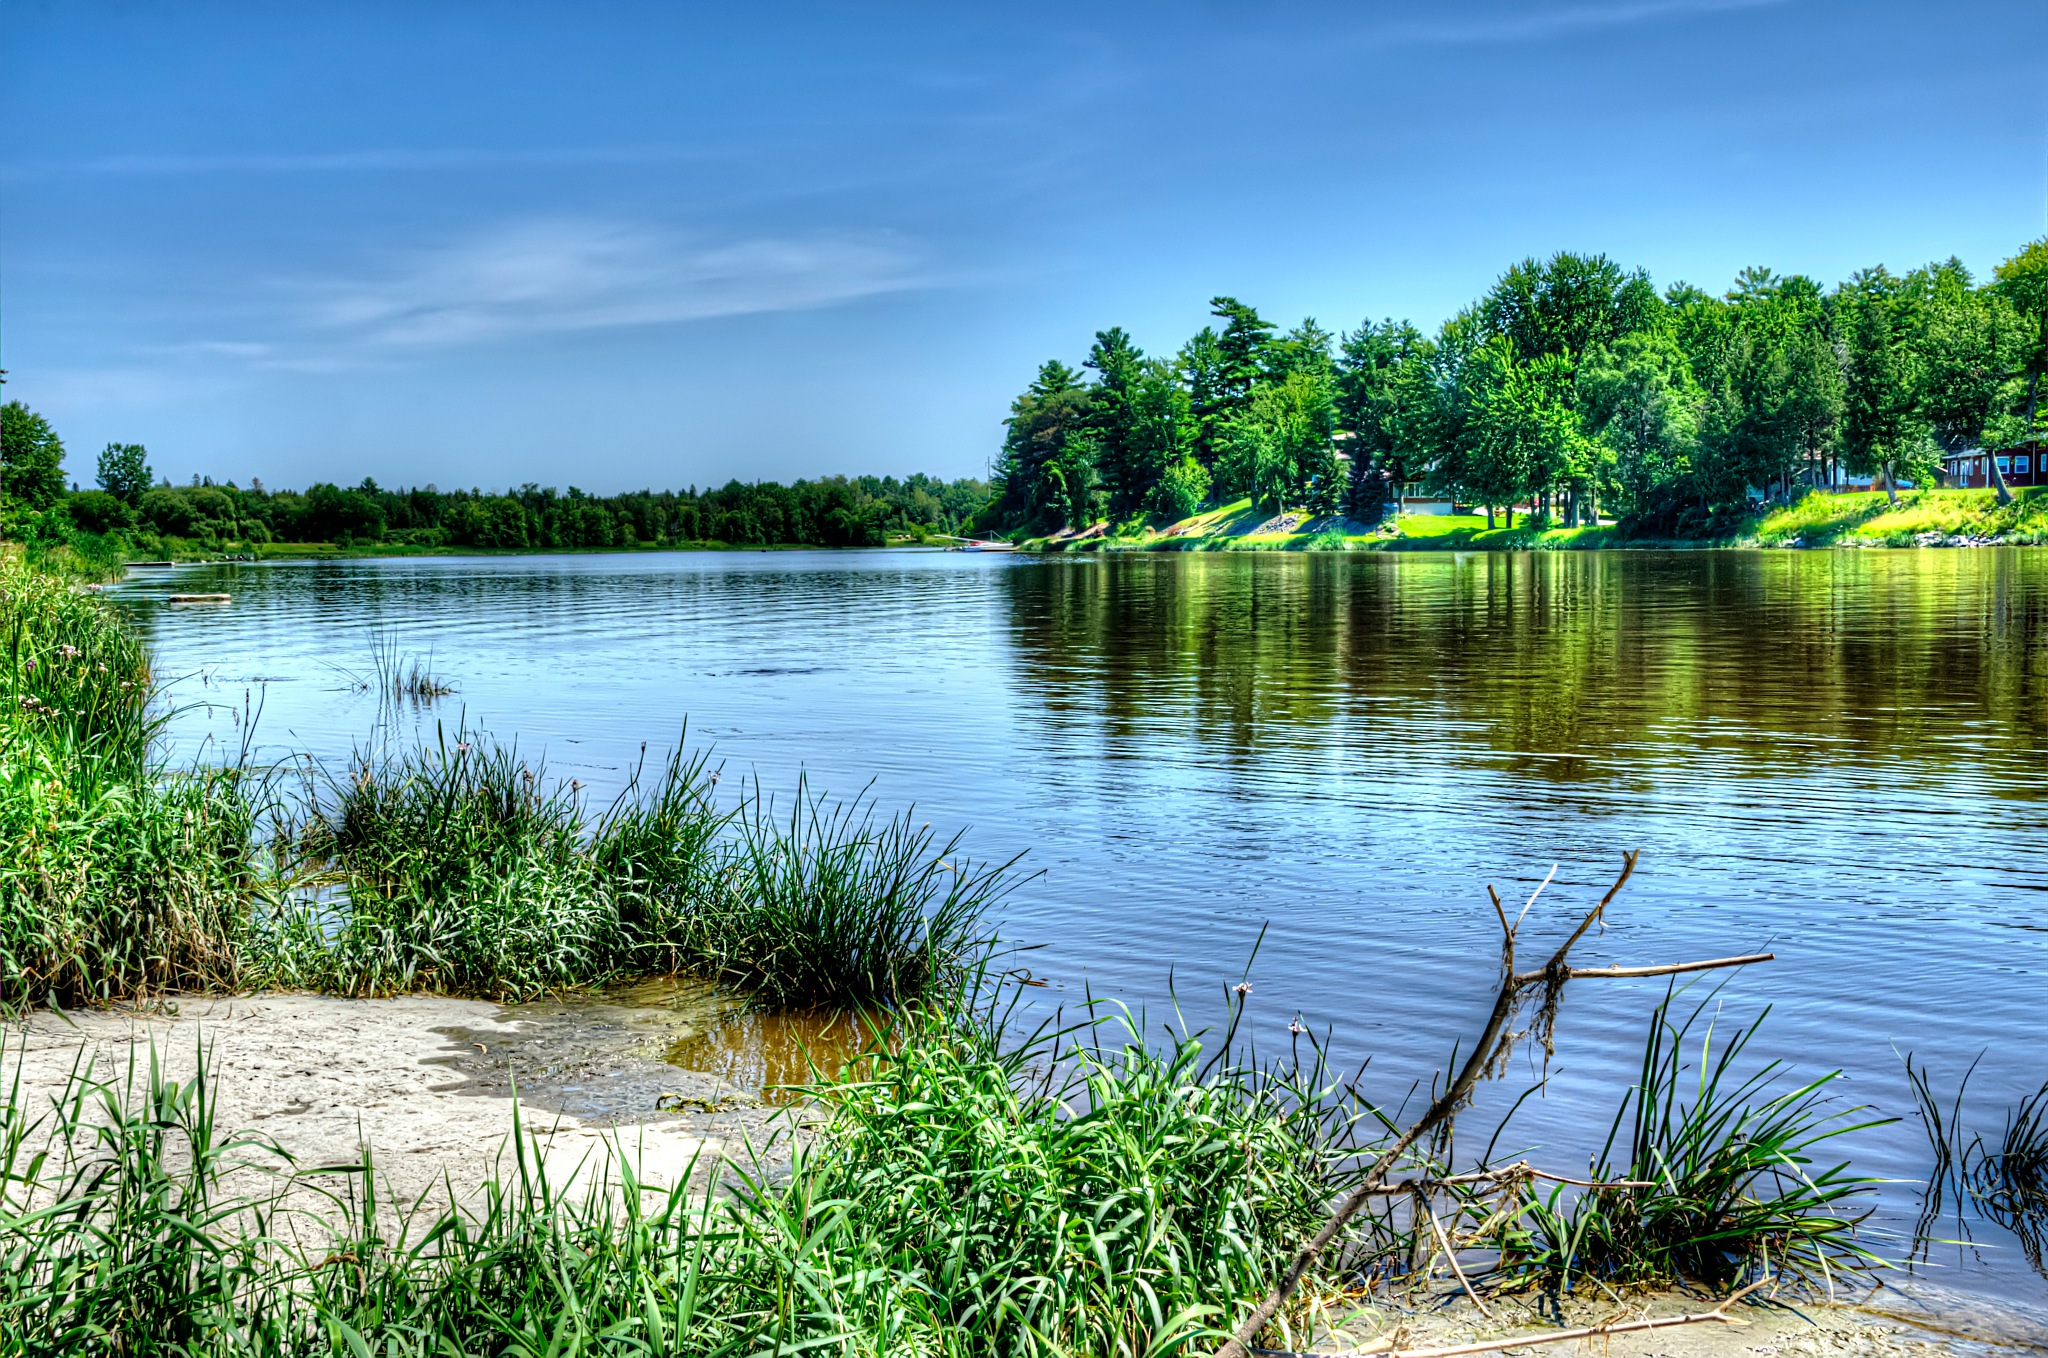 A Sunny Day On The South Nation River by Paul Deveau